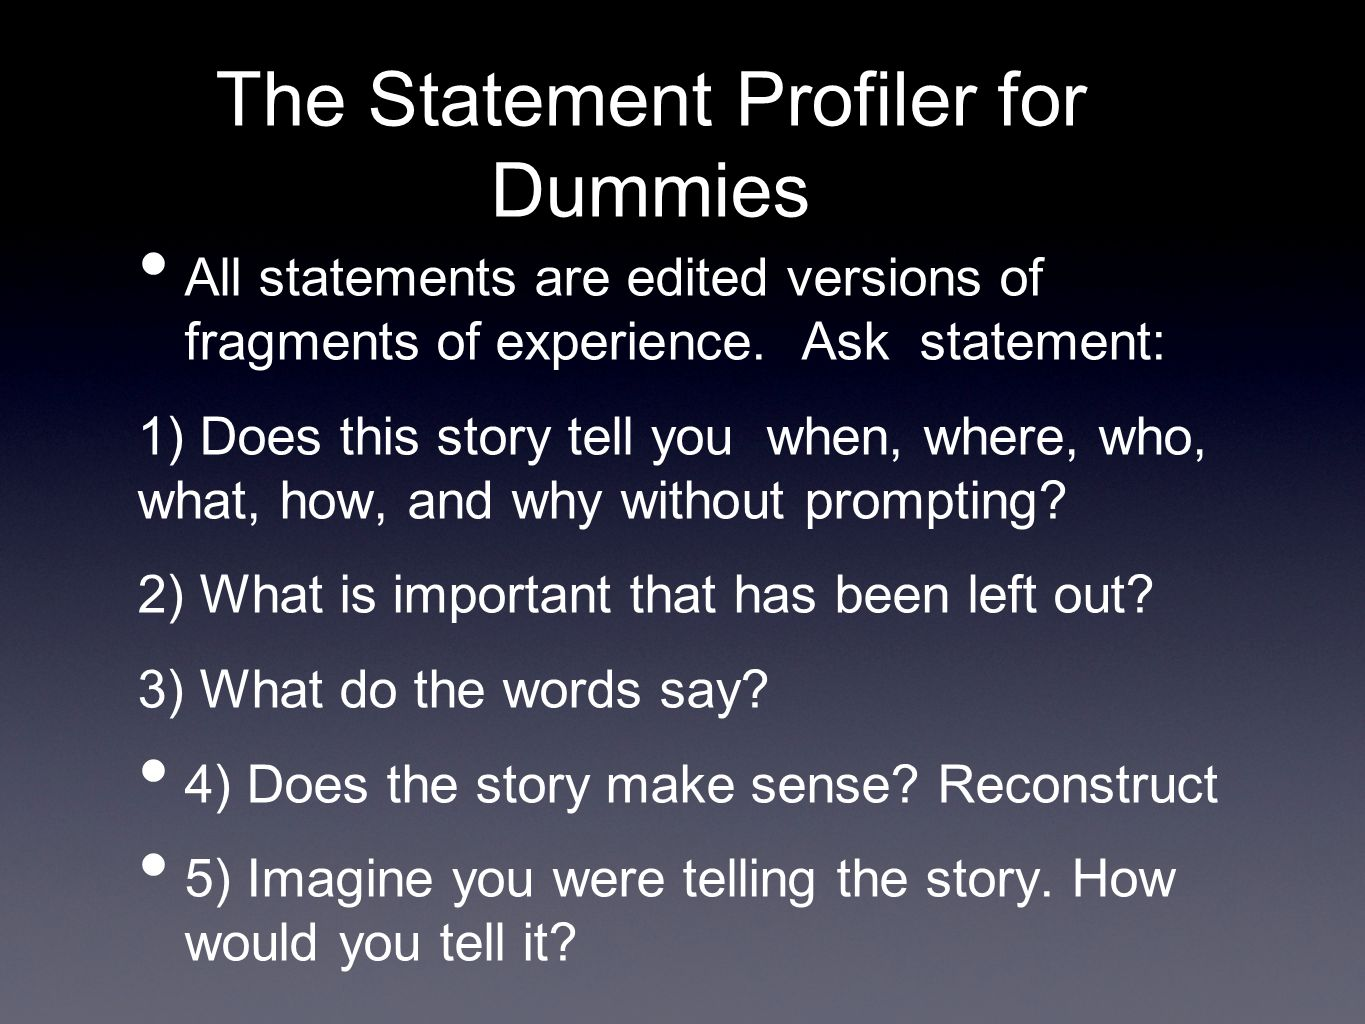 The Statement Profiler for Dummies